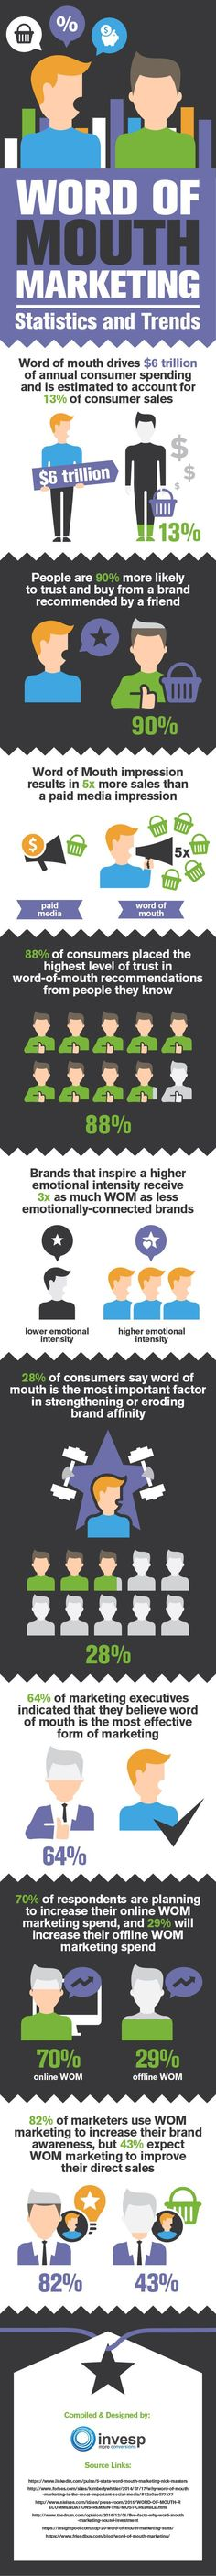 Word of Mouth #Marketing 10 Stats Showing Why You Should Use It More #Infographic